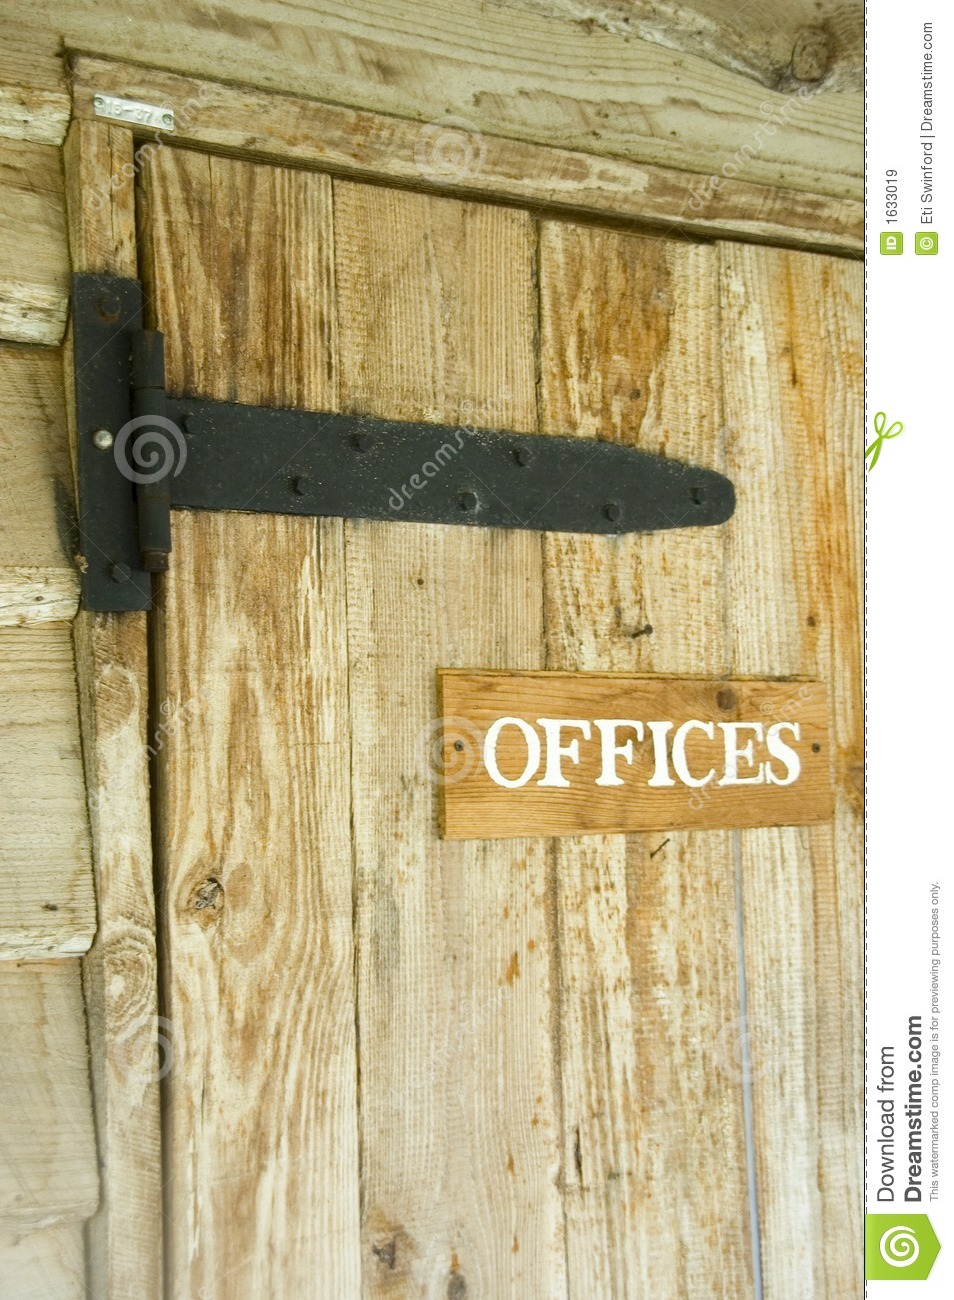 Wooden door with offices signage